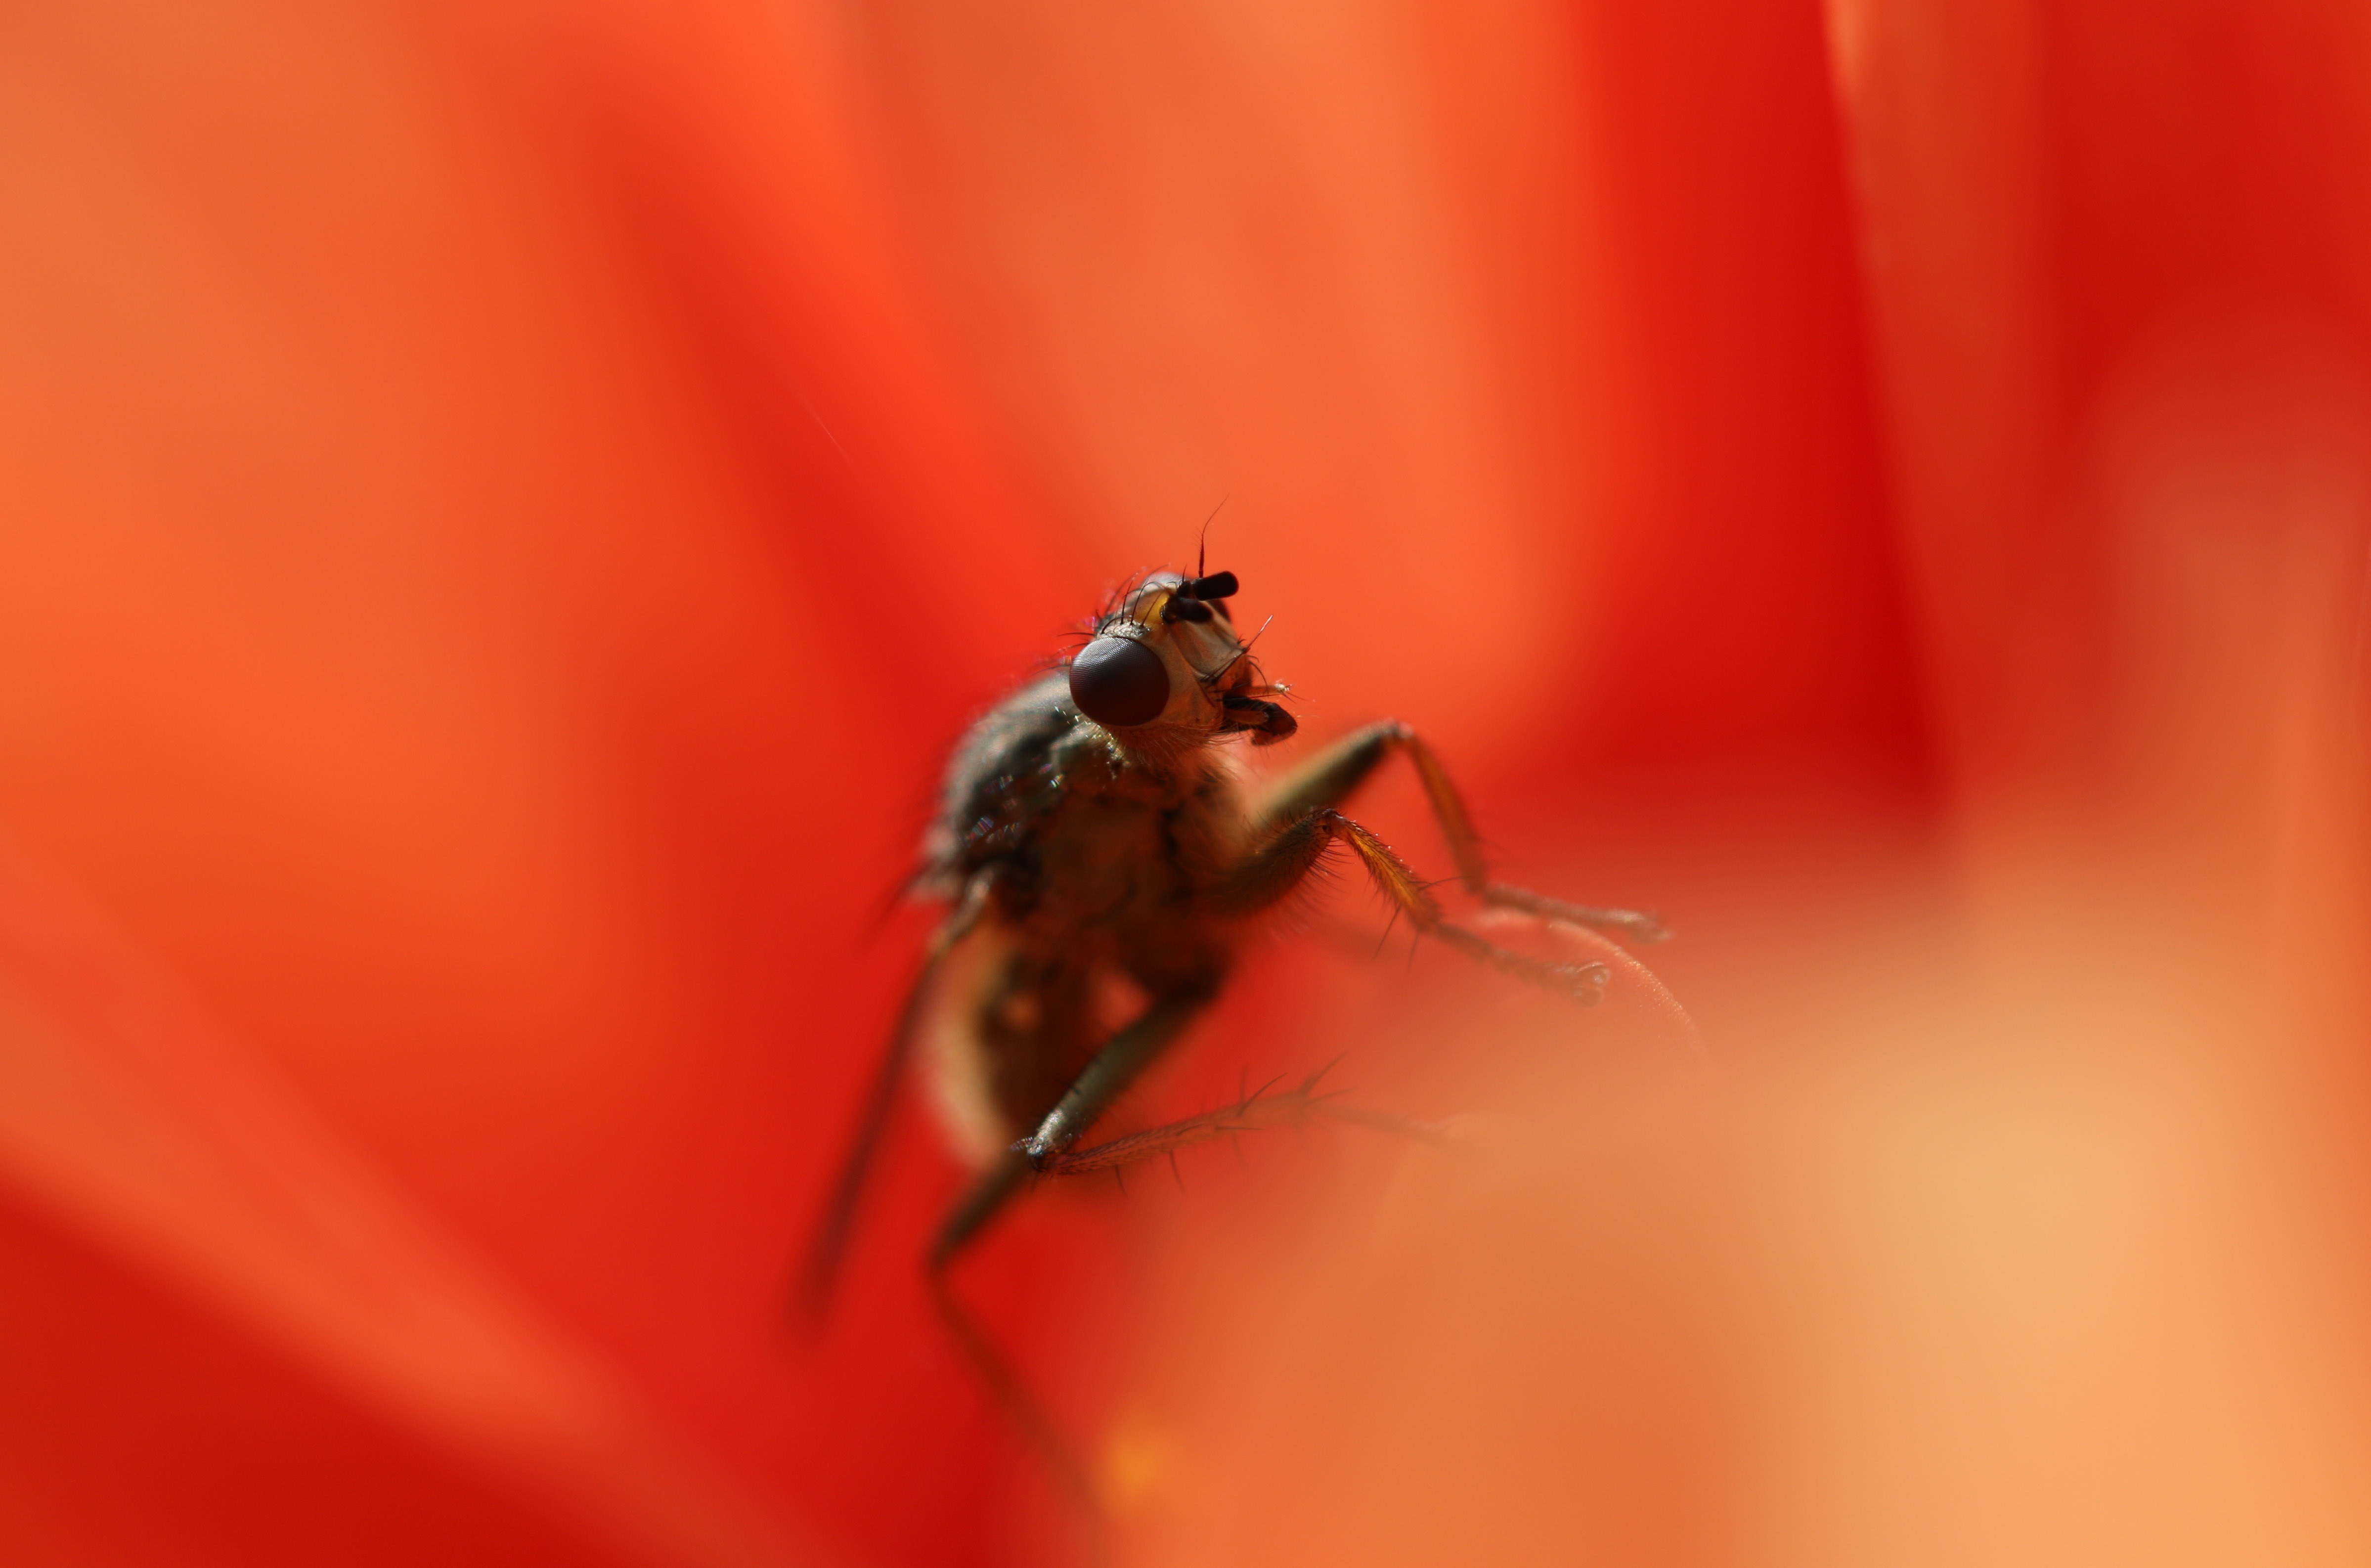 Bee collecting nectar, bee, nectar, flower, flowers, petals, red flower, insect, flying, bee